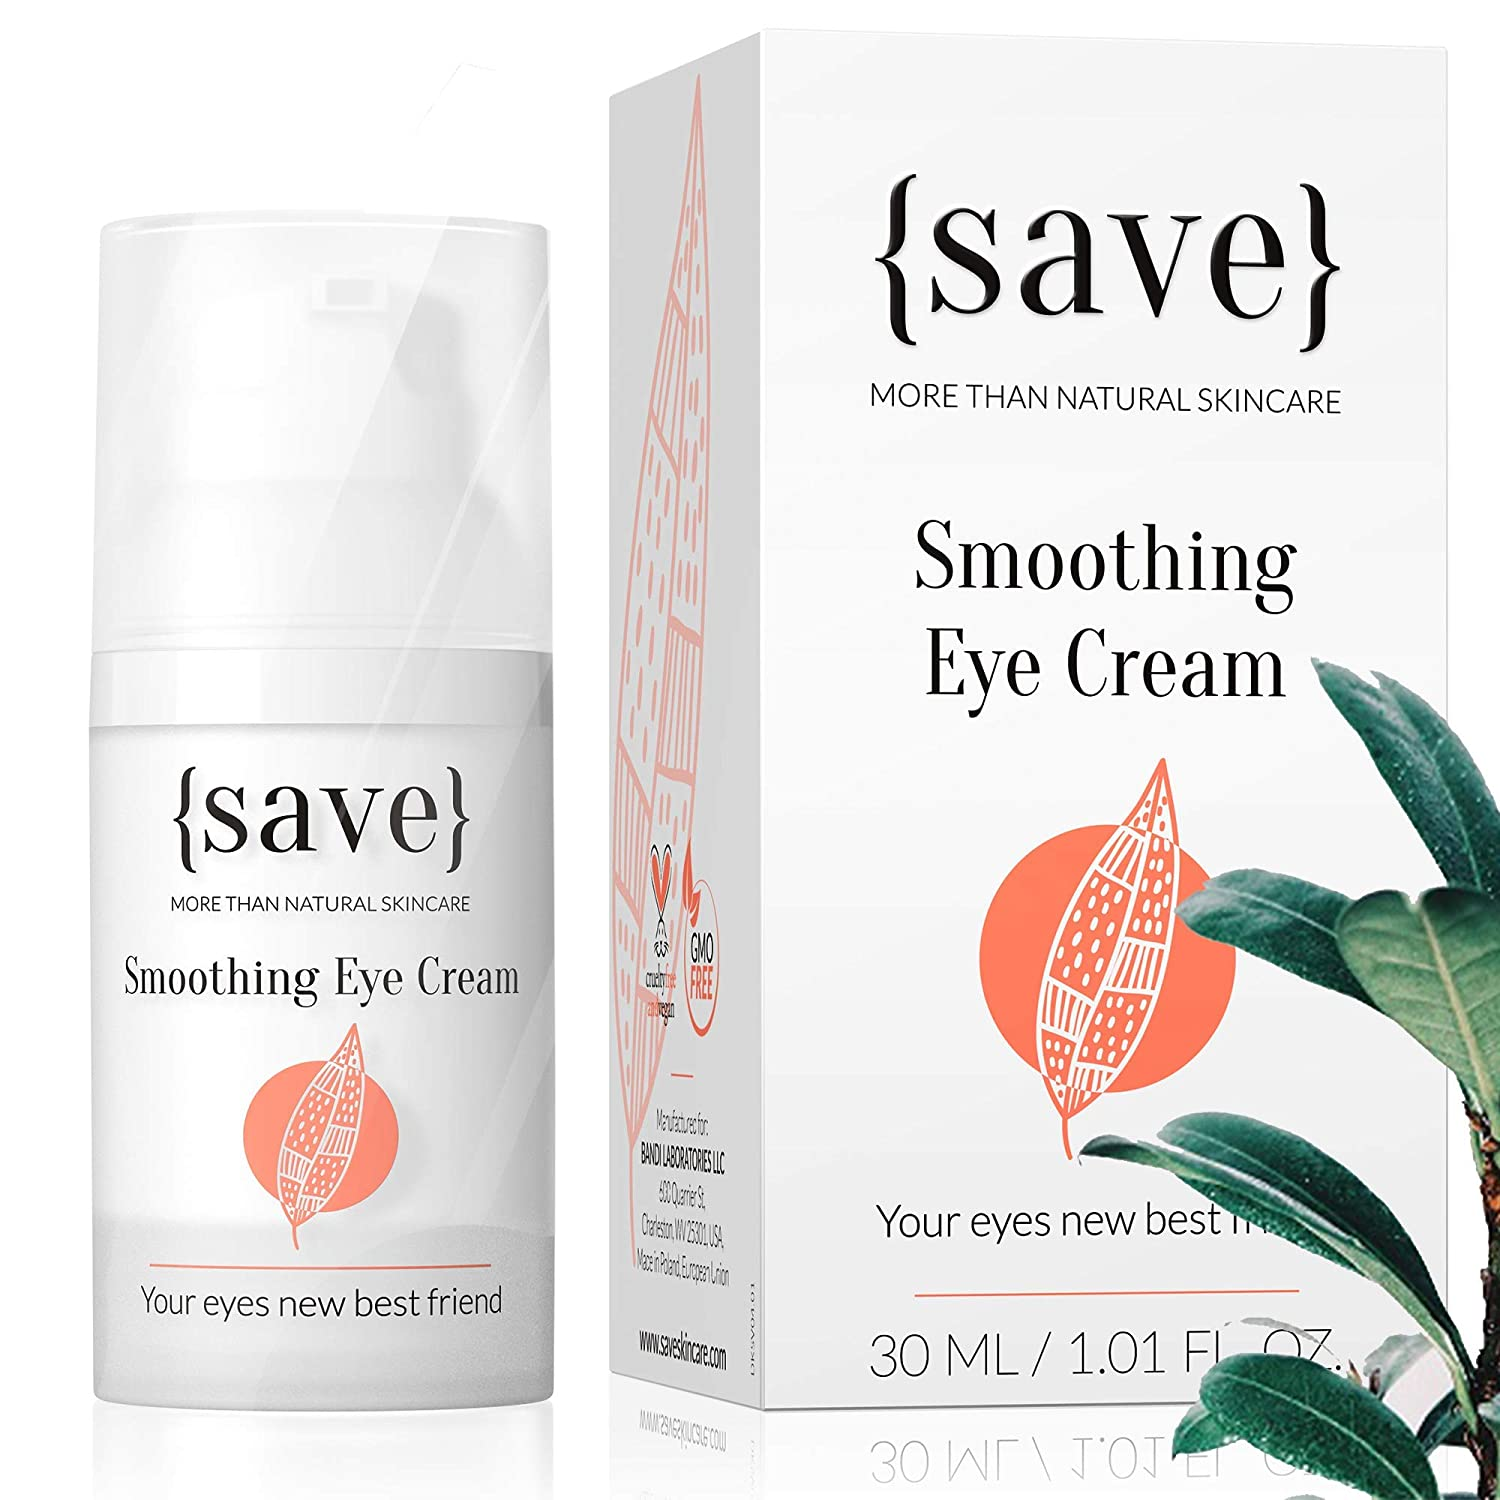 Natural Sensitive Eye Cream with Anti-Wrinkle Support, All Natural and Vegan, for Sensitive Dry Skin, Dark Circles, Bags and Puffiness | 1.01 Fl. Oz.